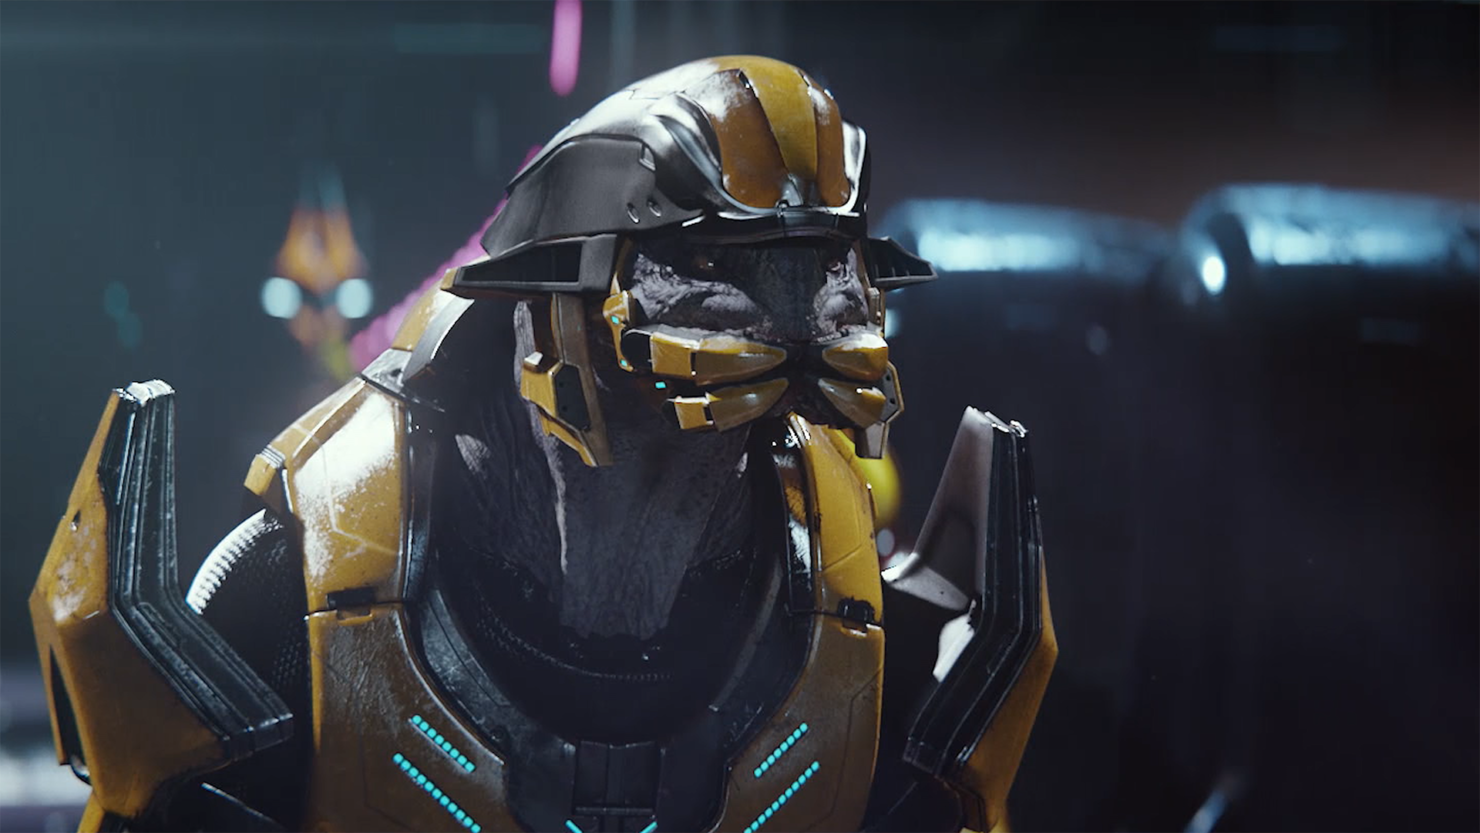 halo-master-chief-collection-2020_halo2anniversary_cinematic_01_nowatermark_1920x1080